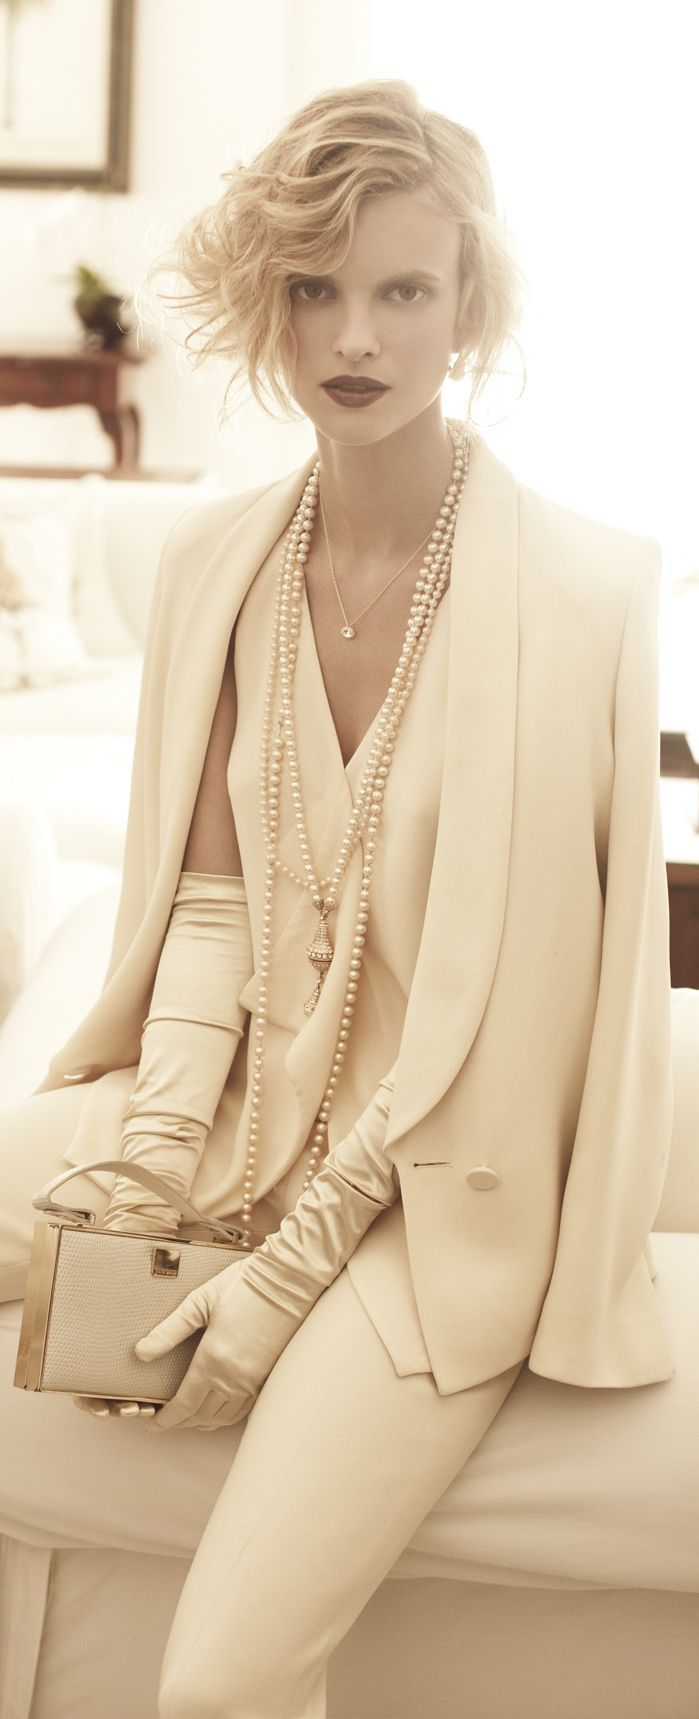 We're loving this perfect drape of the tuxedo blazer and blouse and the exquisite opera gloves to the soft white and the pearls